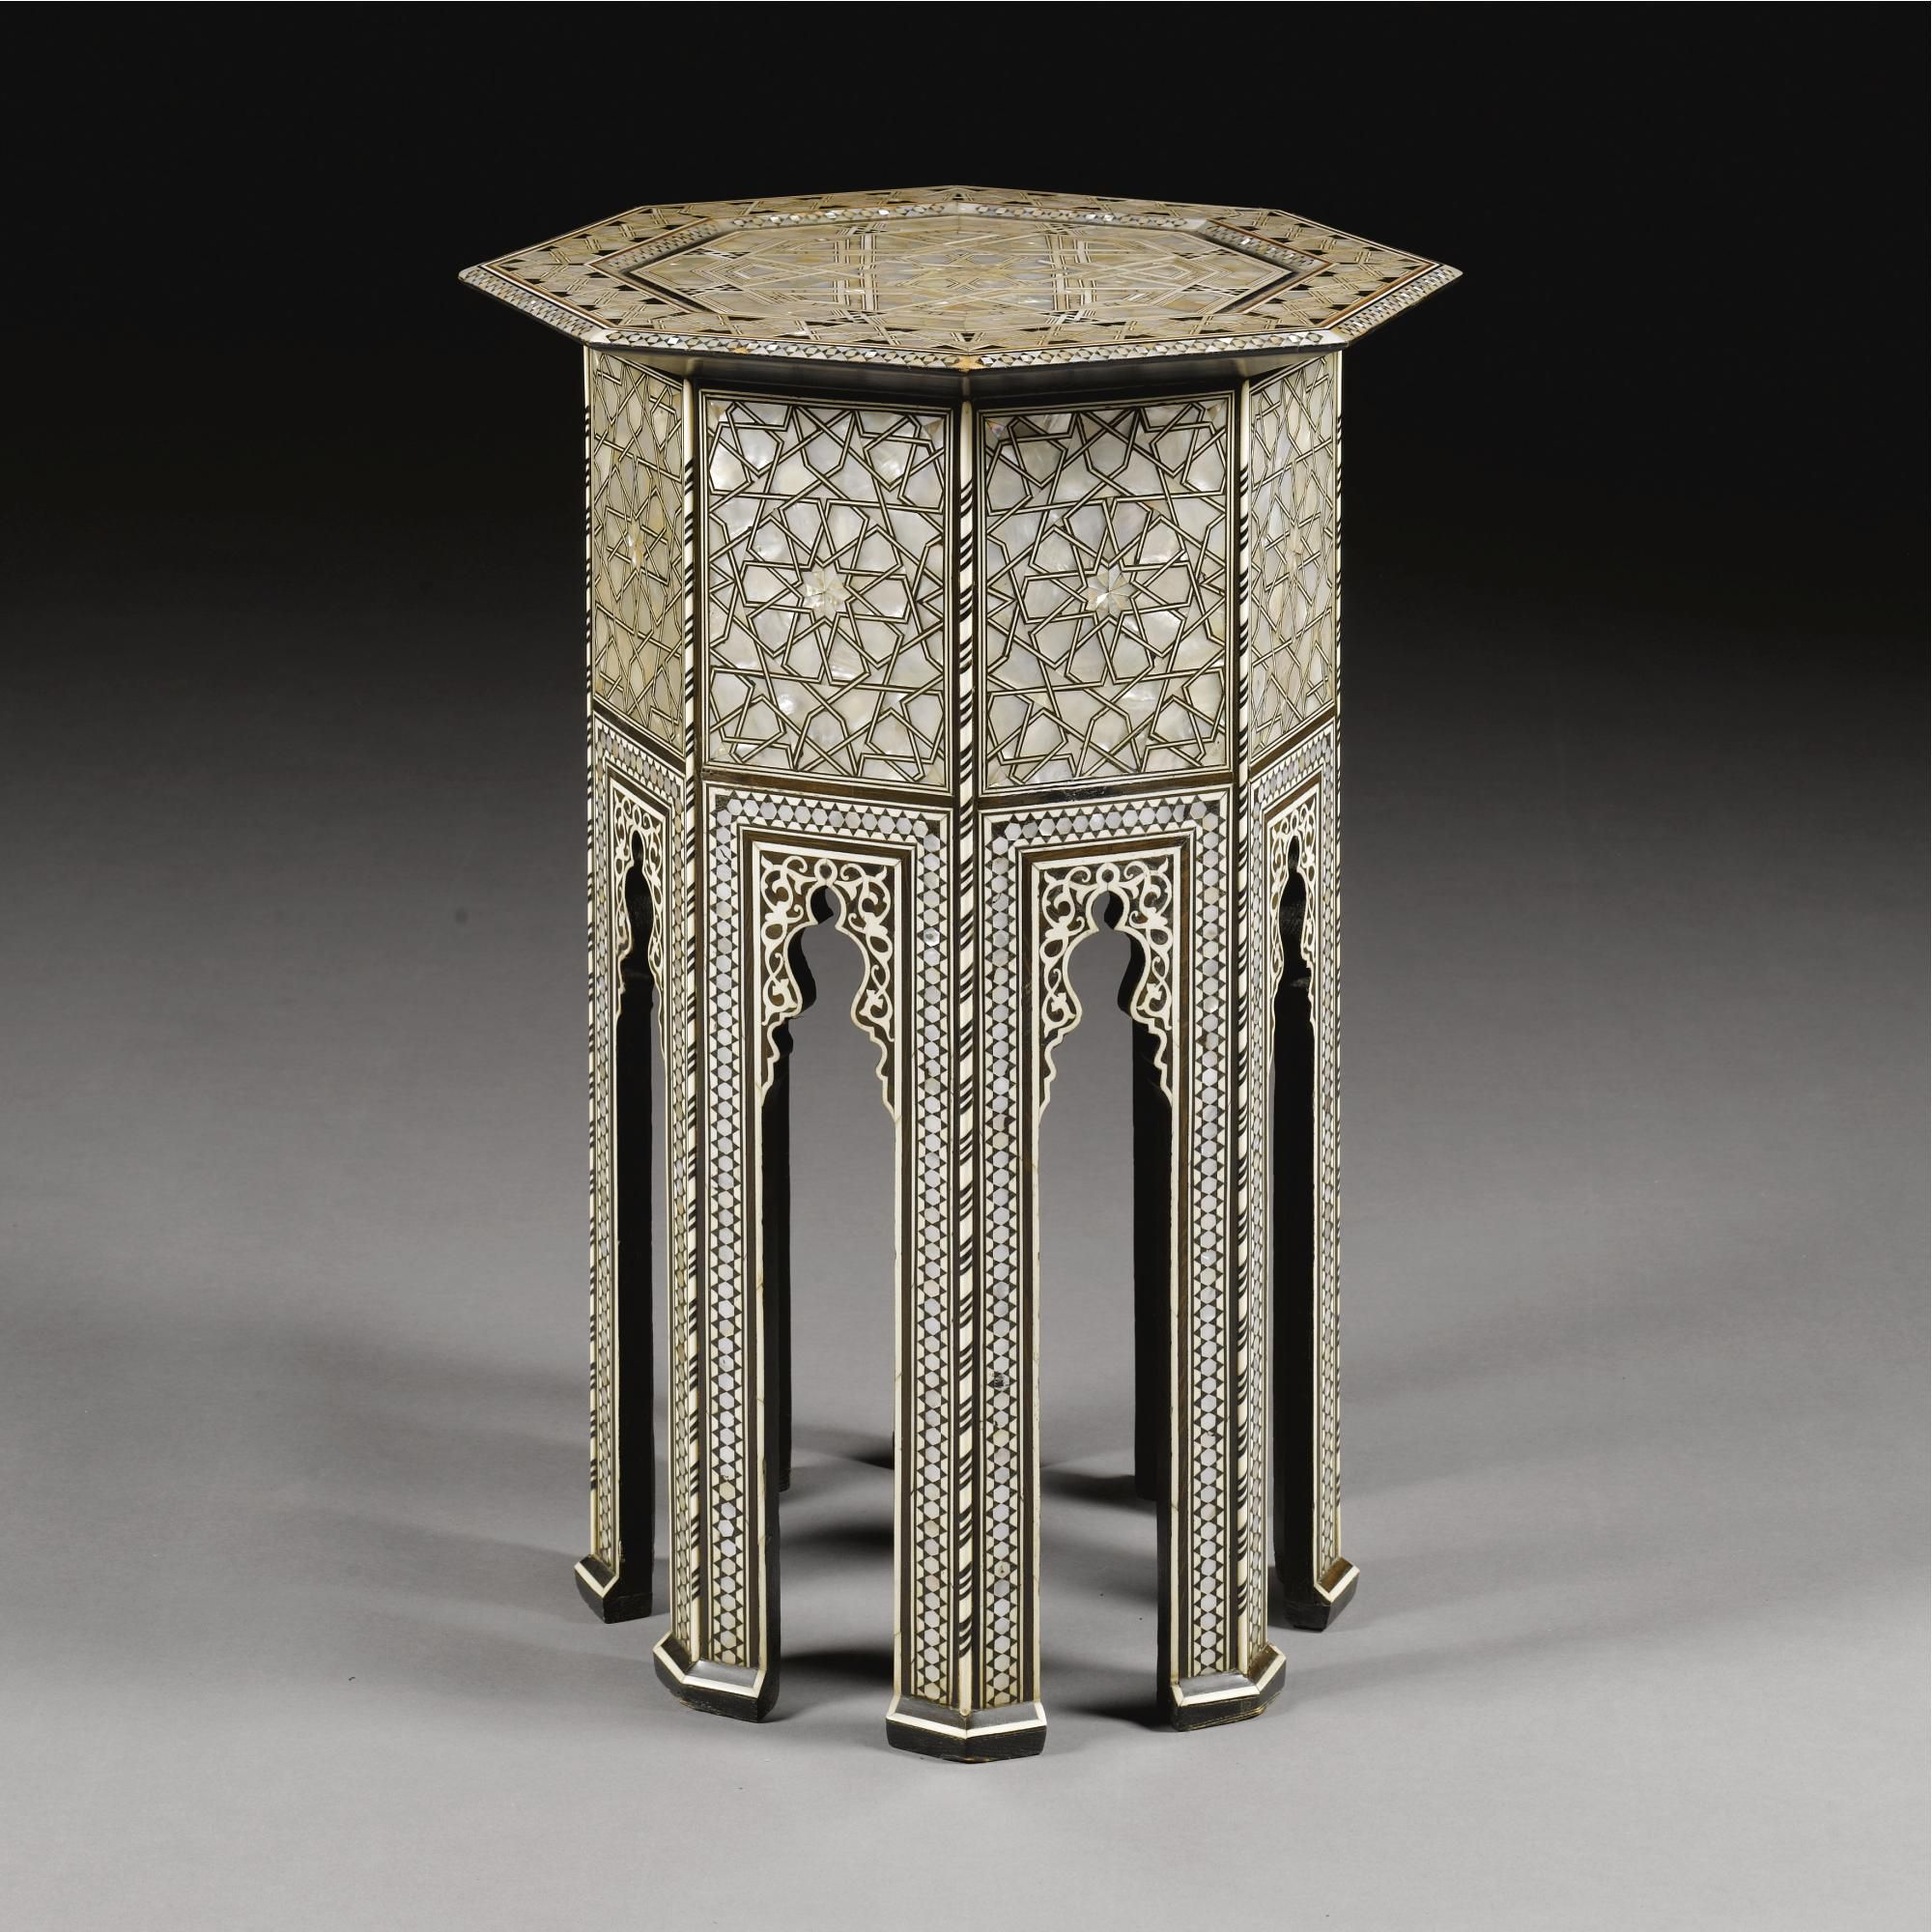 An Ottoman mother-of-pearl and ebony-inlaid octagonal coffee table ...